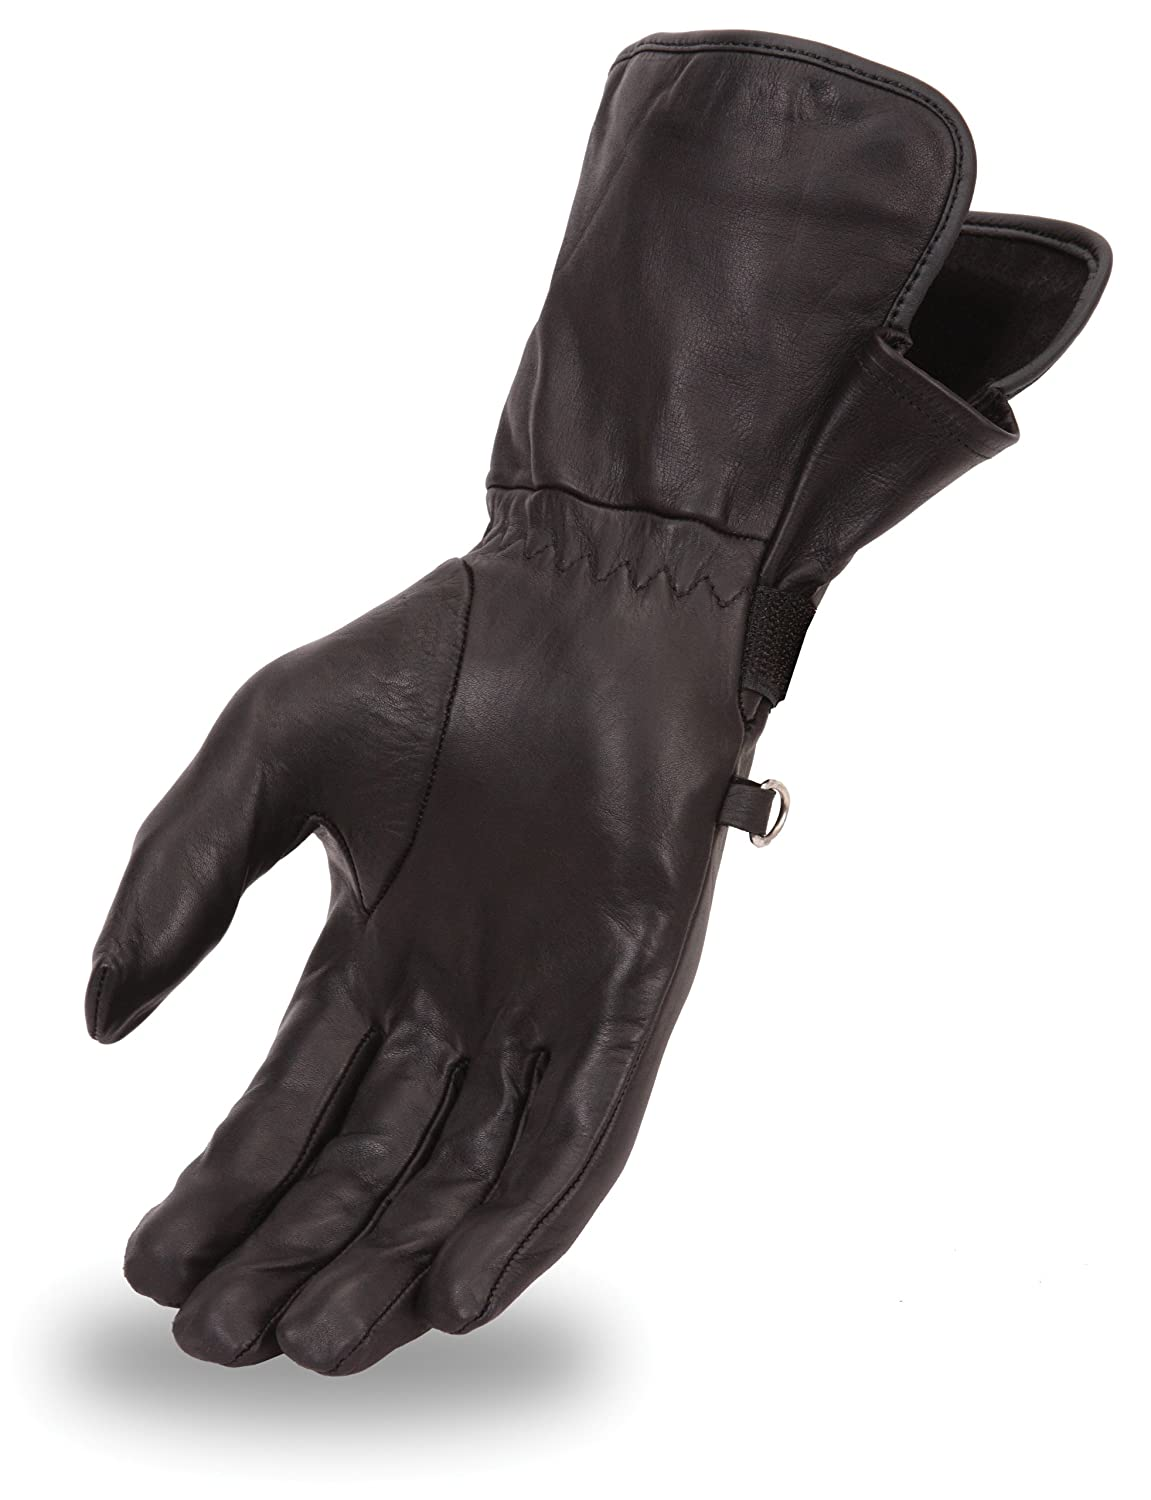 Buy leather gauntlet gloves - Amazon Com First Manufacturing Women S Light Weight Gauntlet Gloves Black Large Automotive